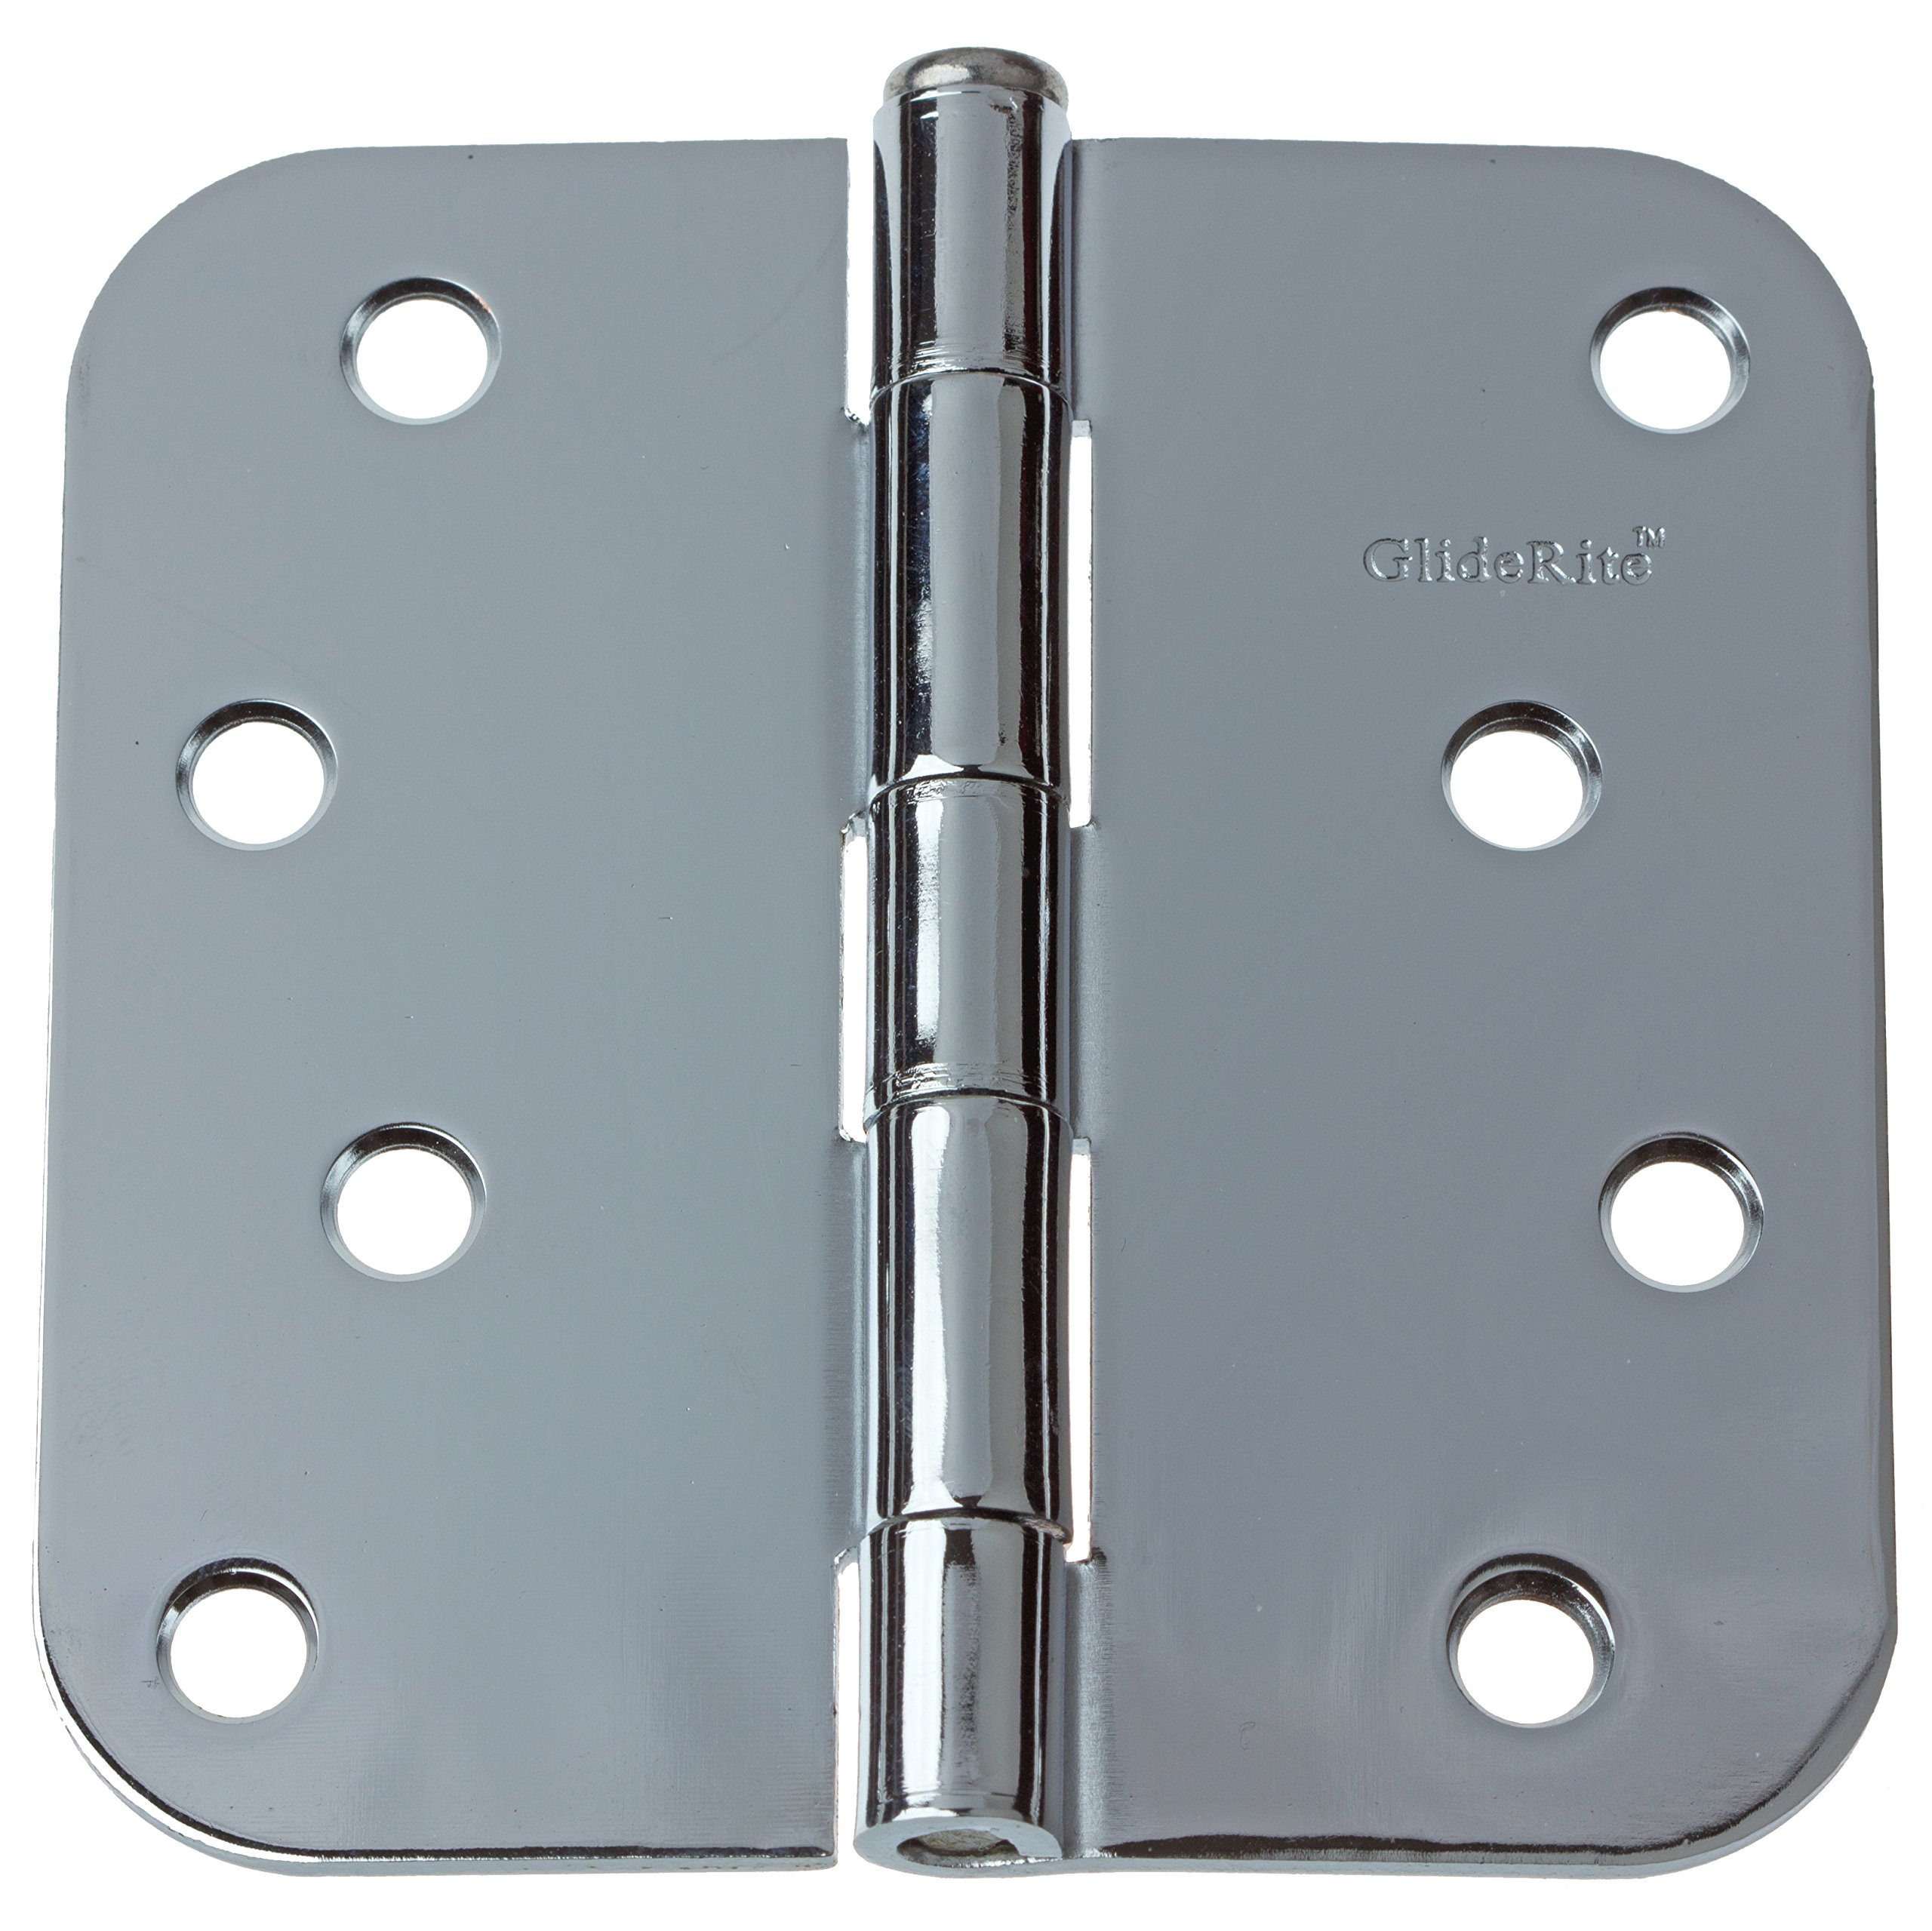 GlideRite Hardware 4058-PC-100 4 inch steel Door Hinges 0.625 inch Radius Polished Chrome Finish 100 Pack